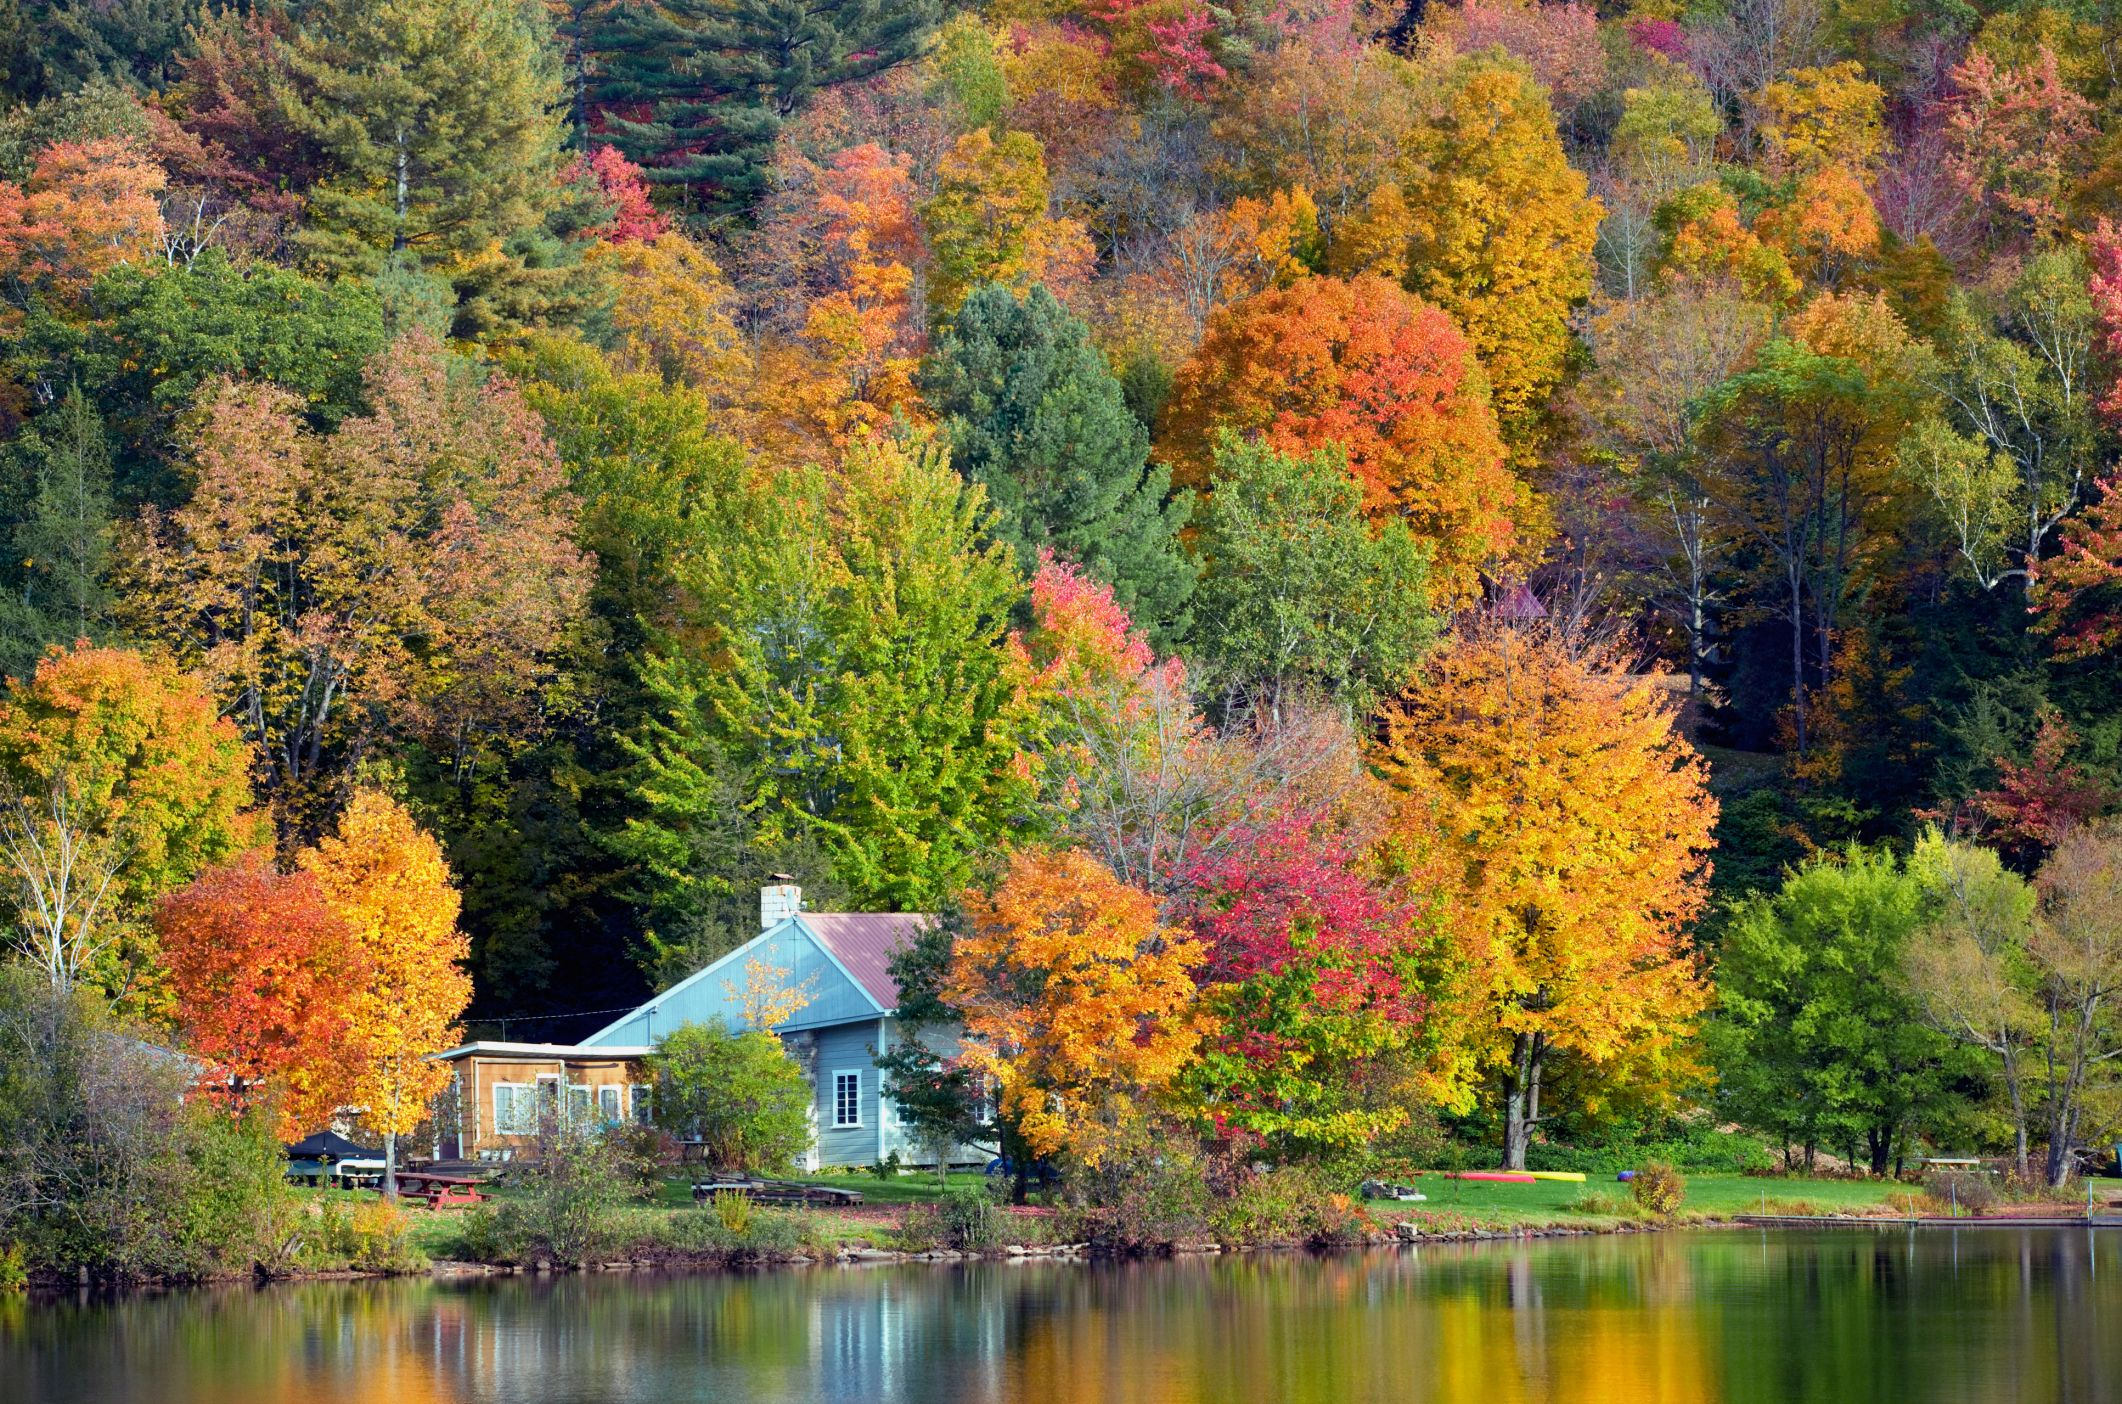 Falling Leaves In Water Live Wallpaper These Overlooked Small Towns Actually Have The Best Fall